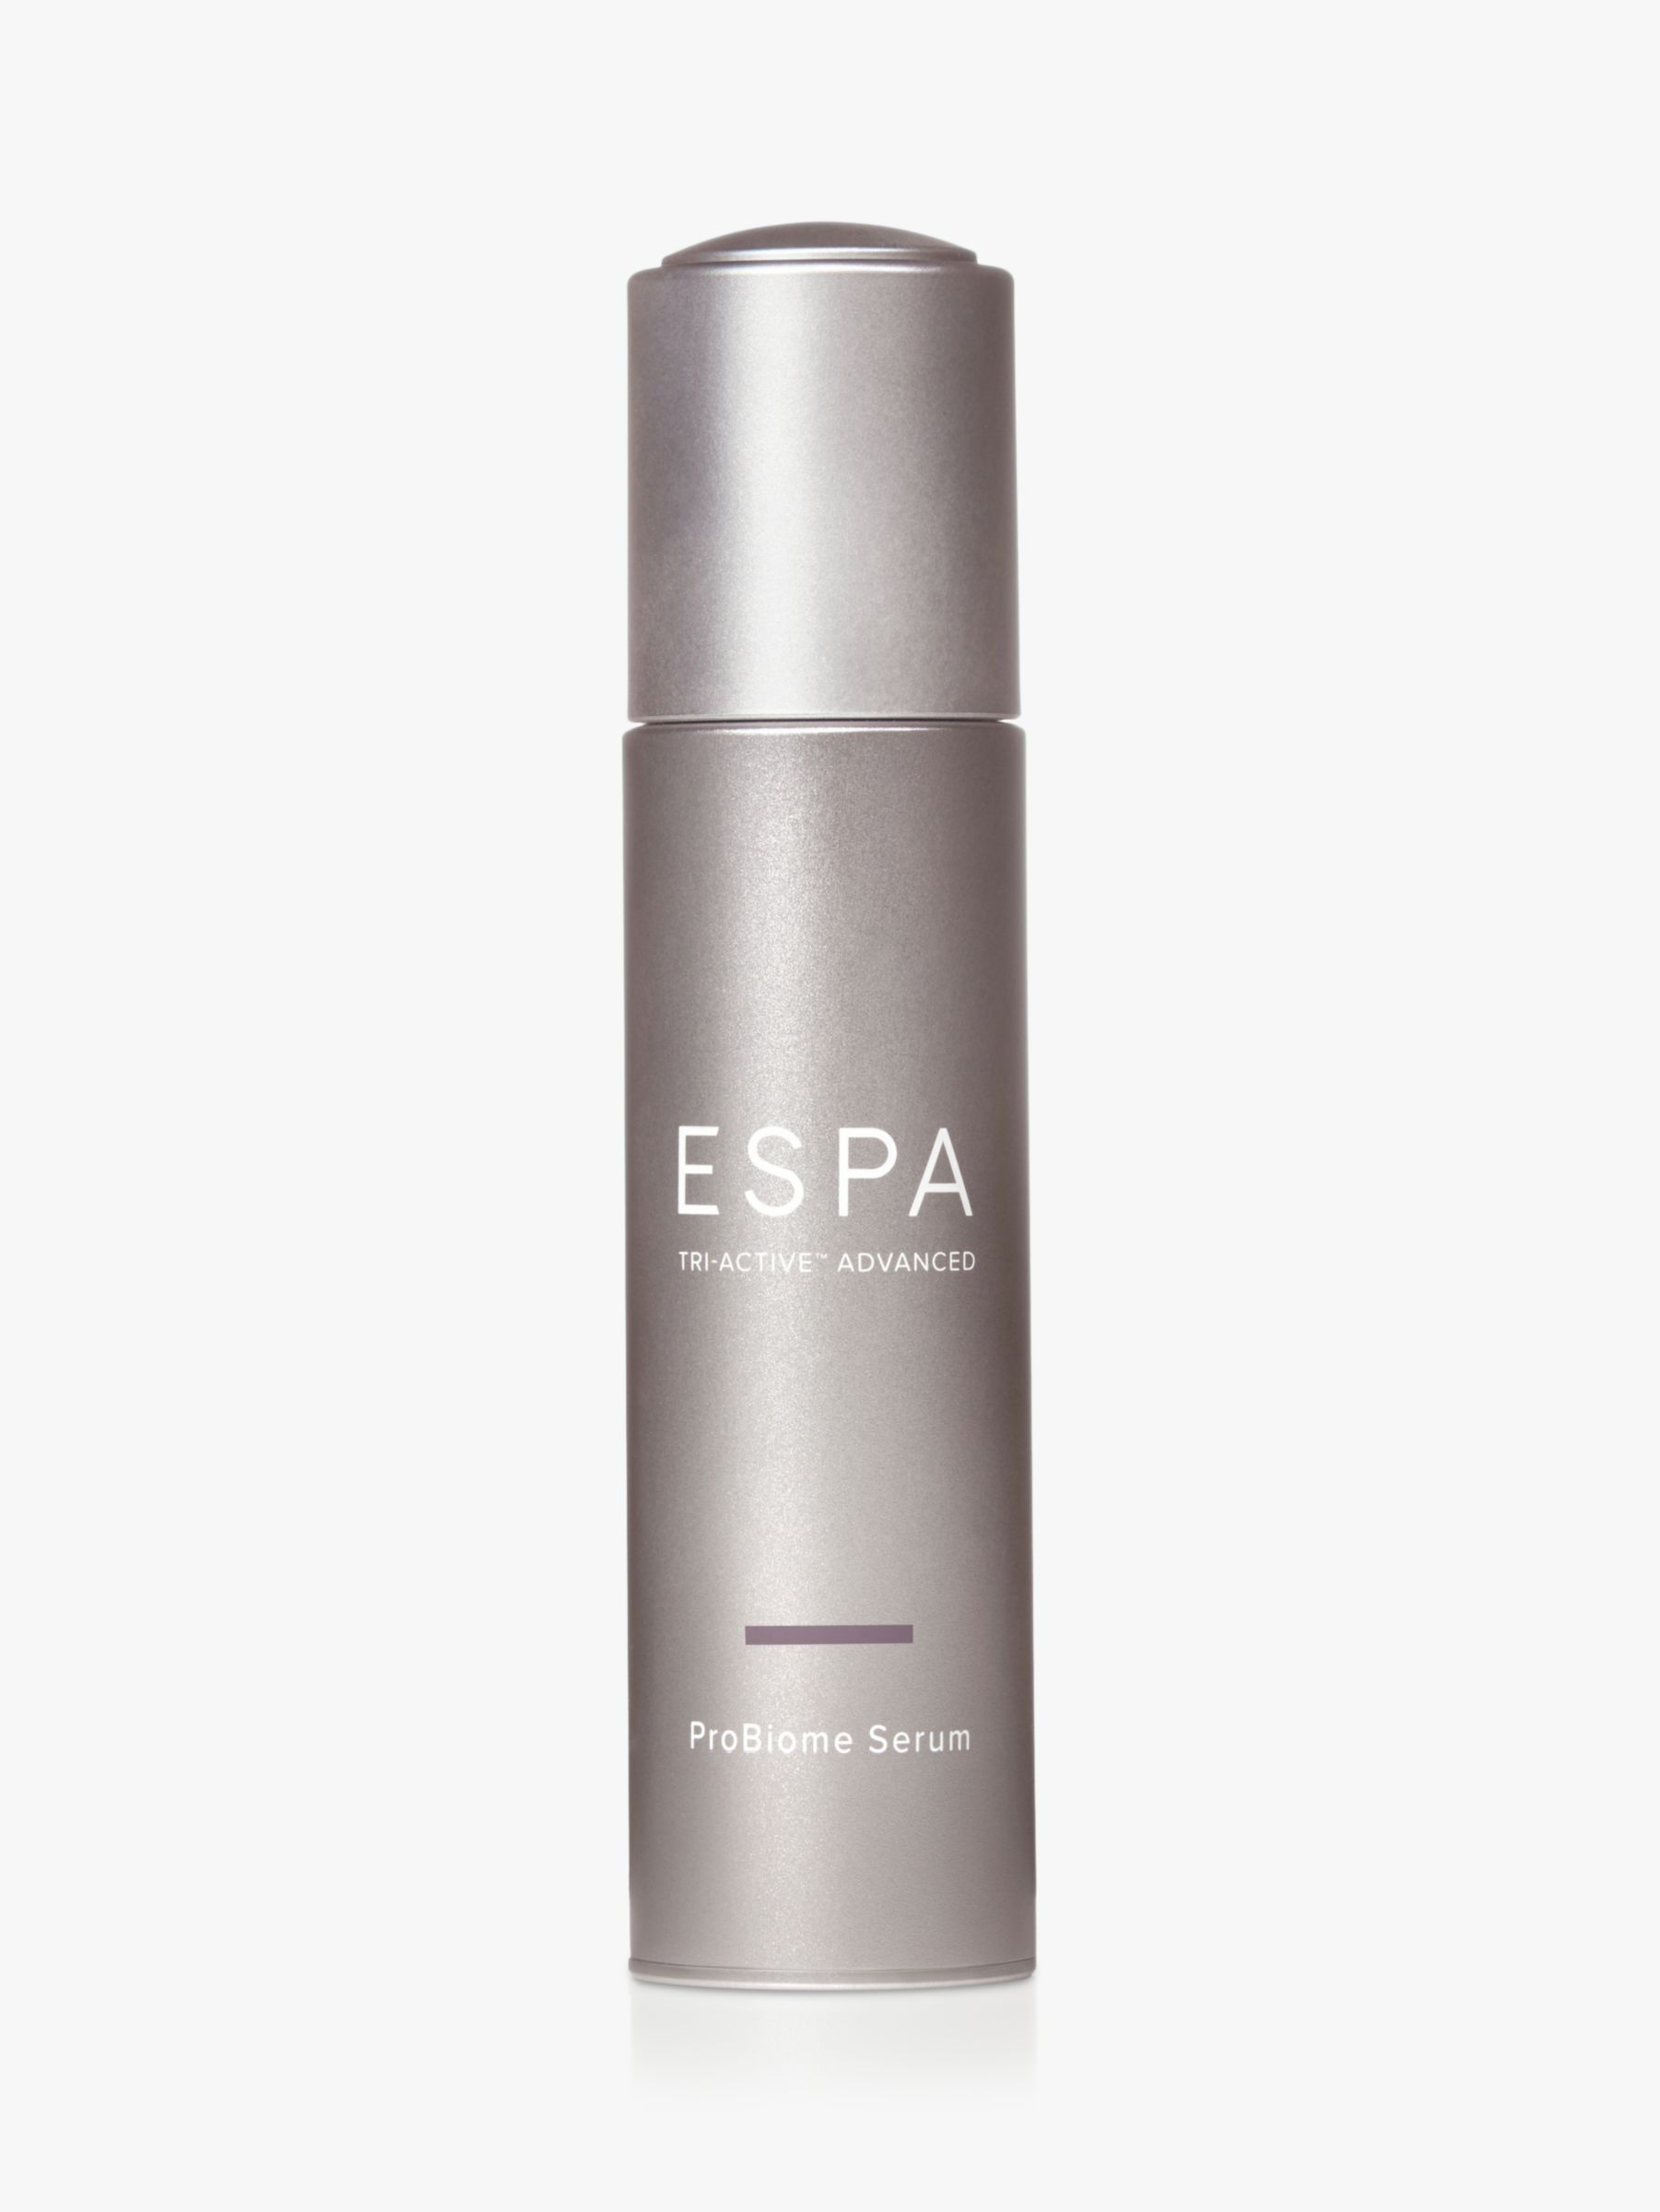 ESPA ESPA Tri-Active Advanced ProBiome Serum, 30ml